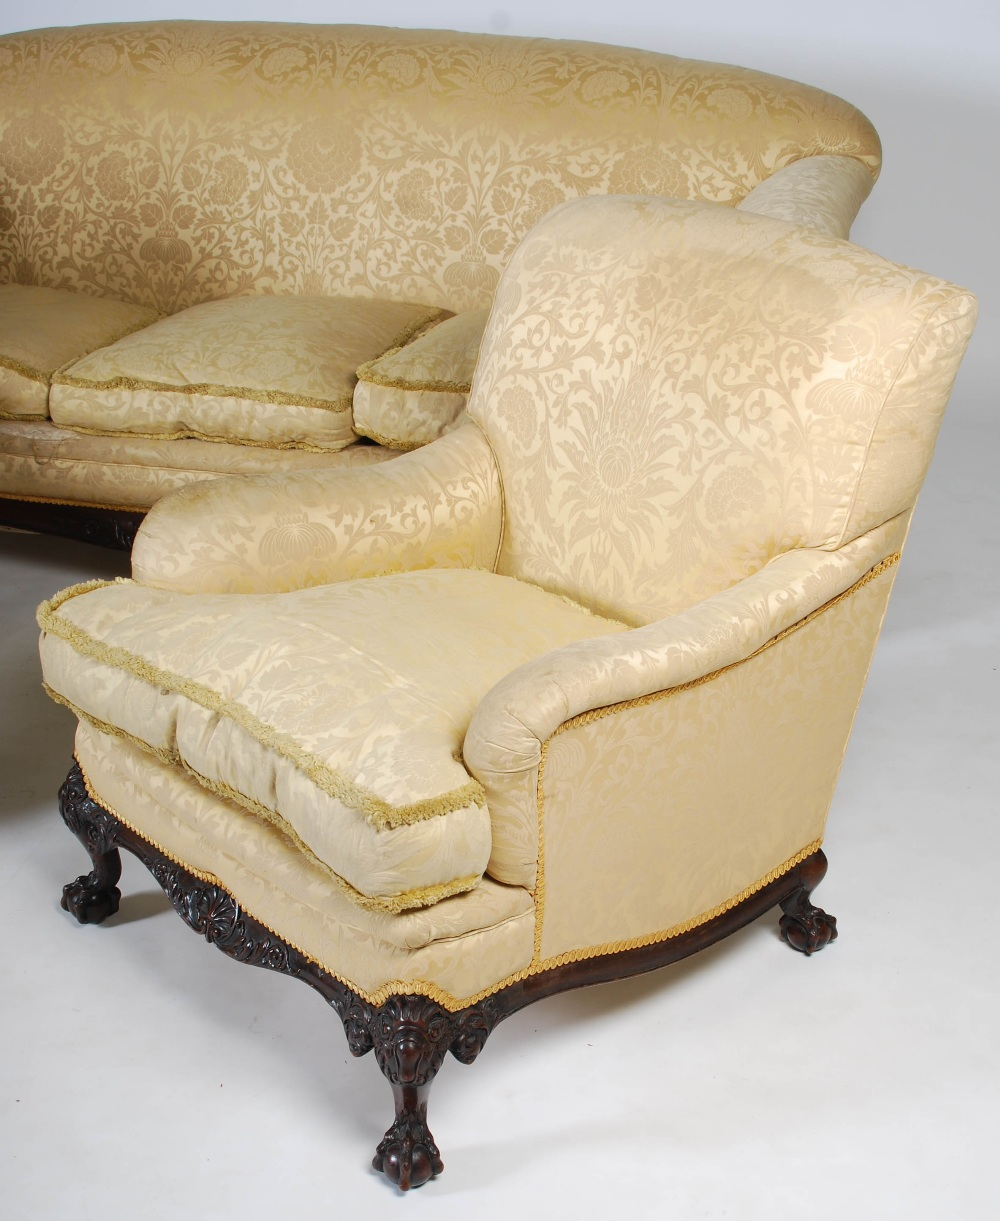 Lot 74 - A 20th century mahogany three piece suite, comprising; three seat sofa and two armchairs, all